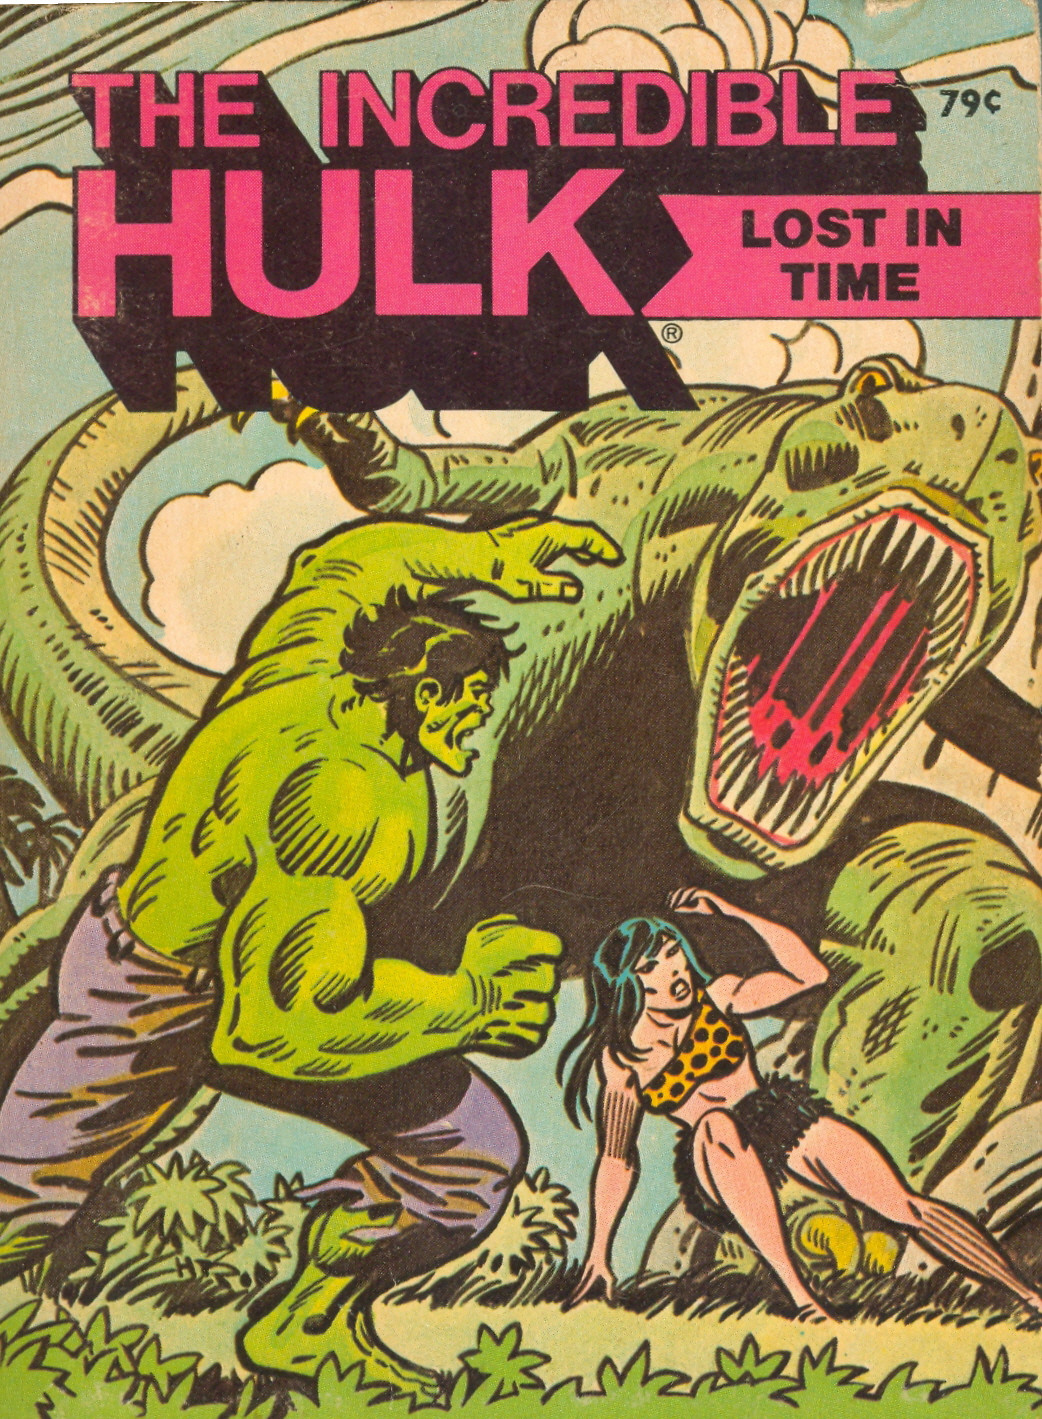 Incredible Hulk: Lost in Time